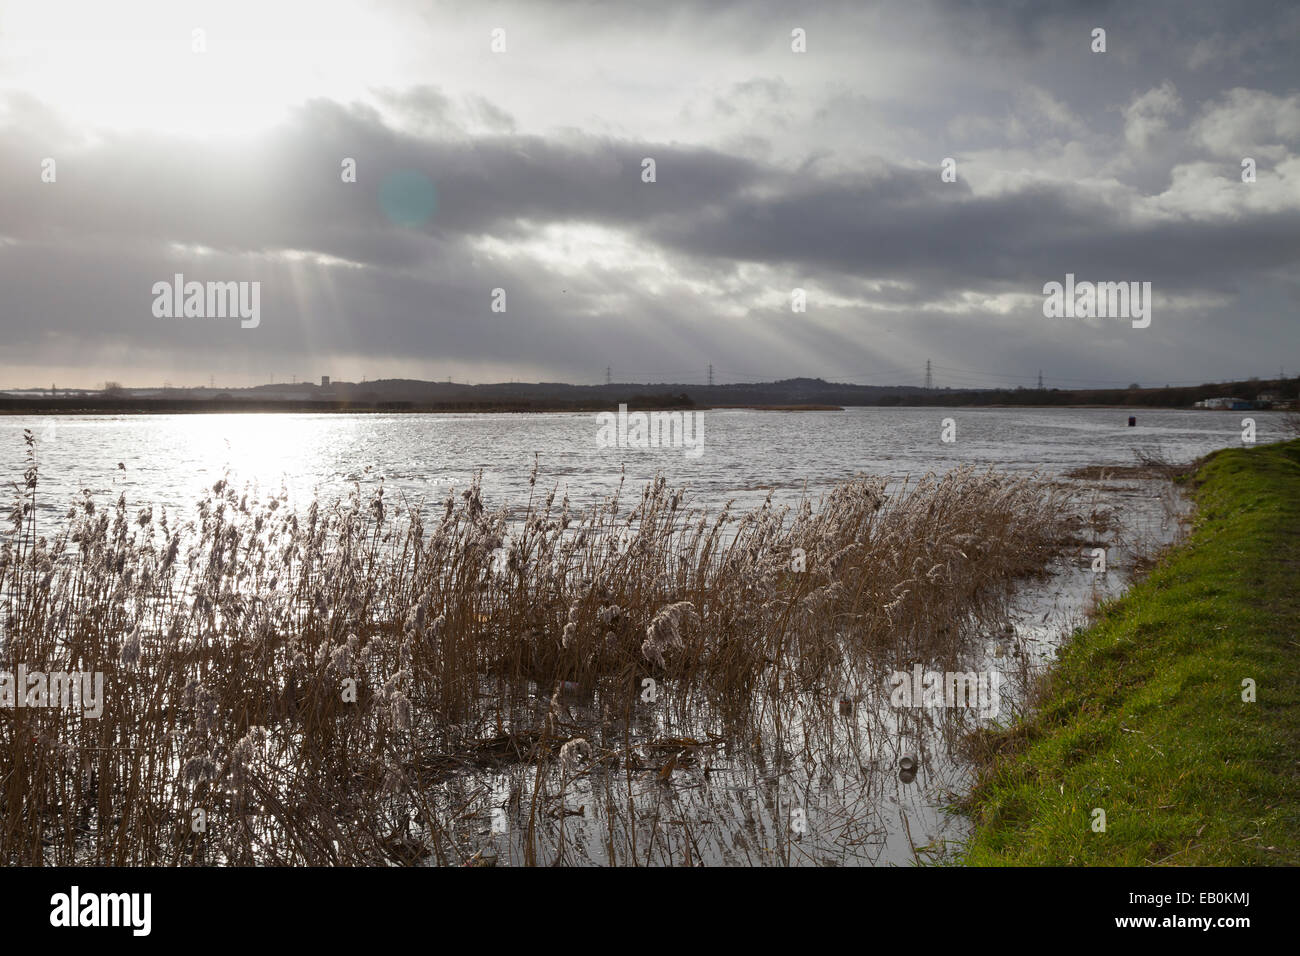 The banks of the River Mersey in Cheshire during a an exceptionally high tide in January 2014. - Stock Image